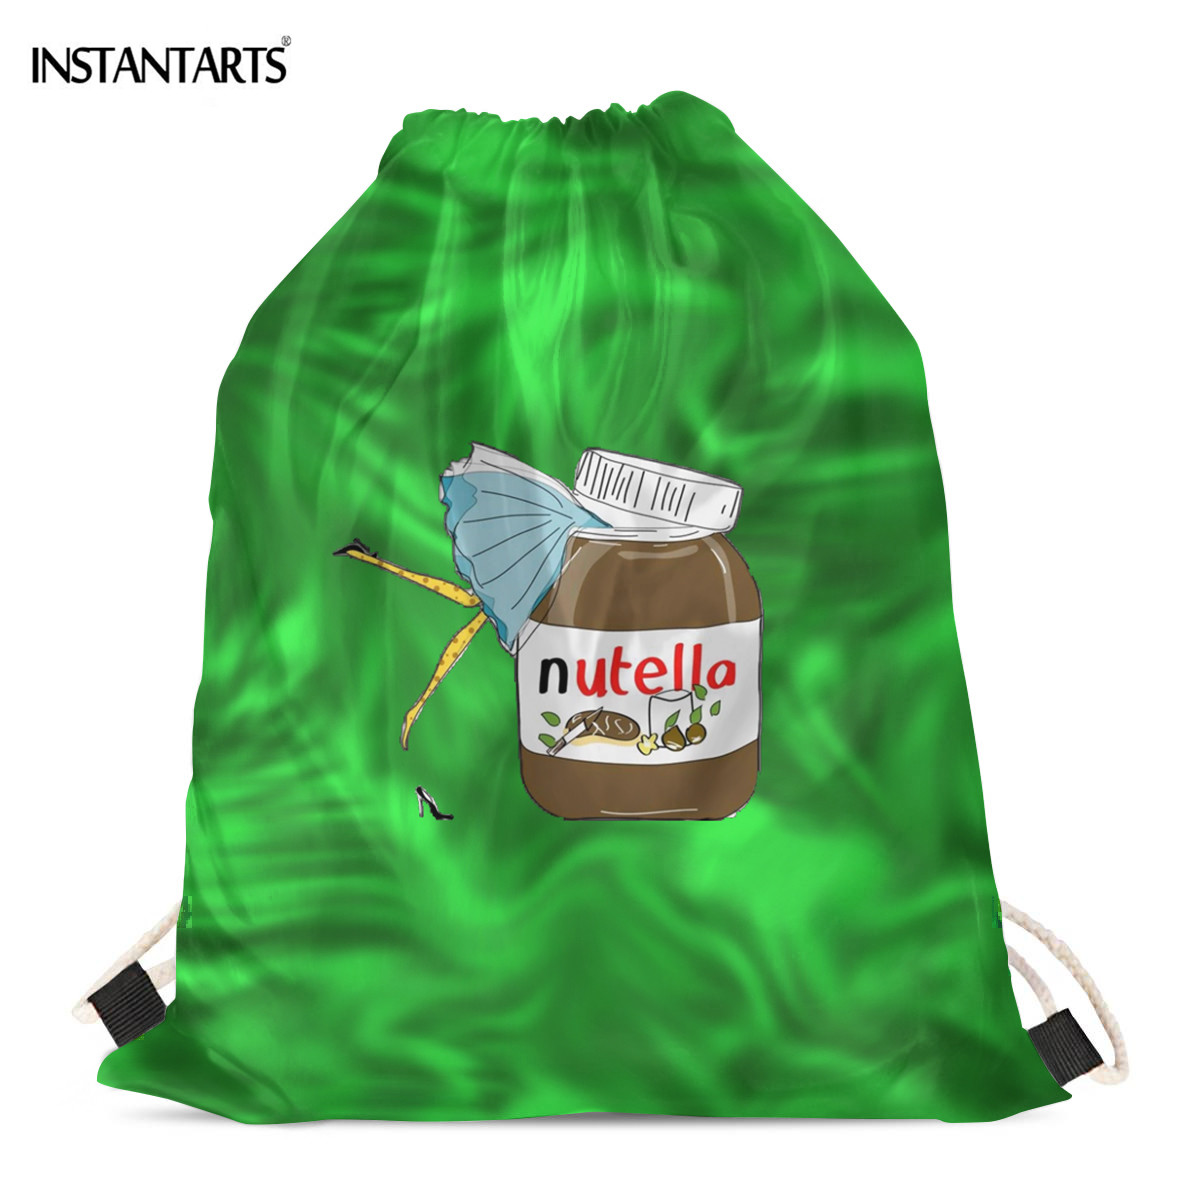 INSTANTARTS Lovely Food Nutella Lady Print Shopping Bags For Women Walking Hiking Gymsack Casual Eco Shoulder Backpack Daypack